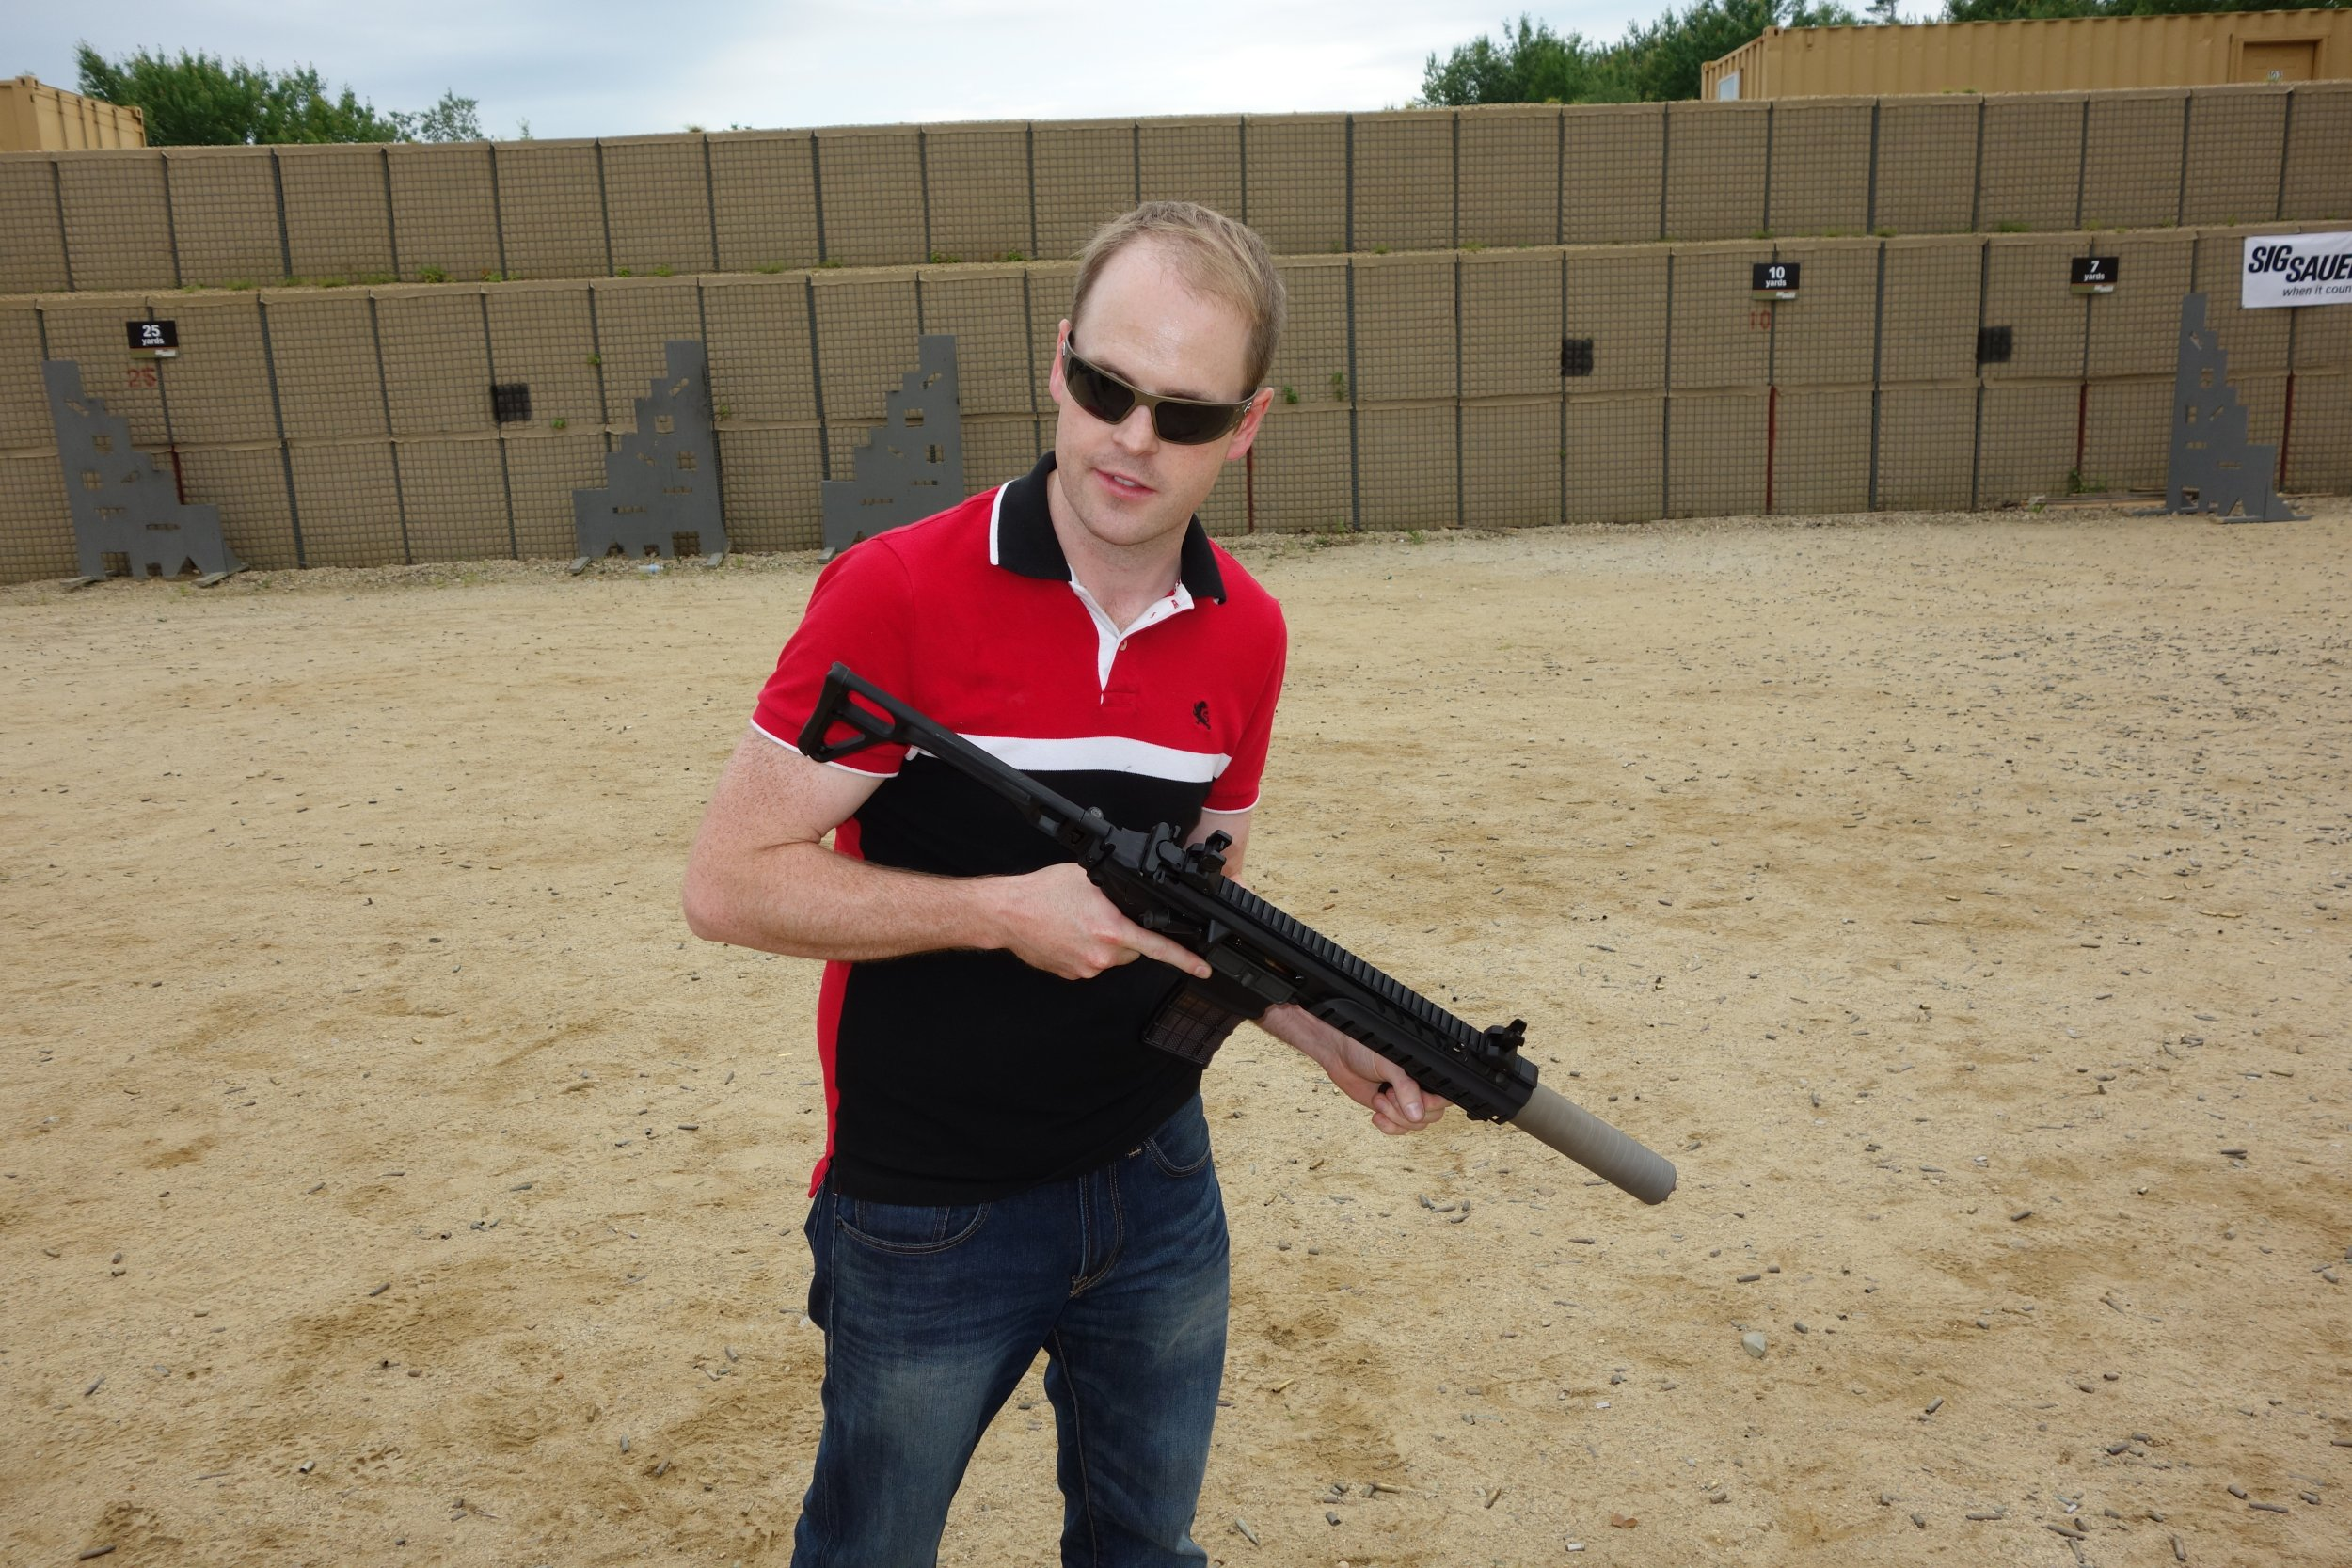 SIG SAUER SIG MCX Multi Caliber AR Assault Rifle Carbine SBR 300 Blackout 300BLK Suppressed SIG SAUER Academy New Media Writers Event 2014 David Crane DefenseReview.com DR 7 medium SIG MCX LVAW (Low Visibility Assault Weapon) Black Mamba Suppressed 300 Blackout (300BLK) Piston AR Assault SBR/PDW (Short Barreled Rifle/Personal Defense Weapon) Fired on Full Auto and Semi Auto with Subsonic and Supersonic Ammo During SIG SAUER New Media Writers Event (Video!)